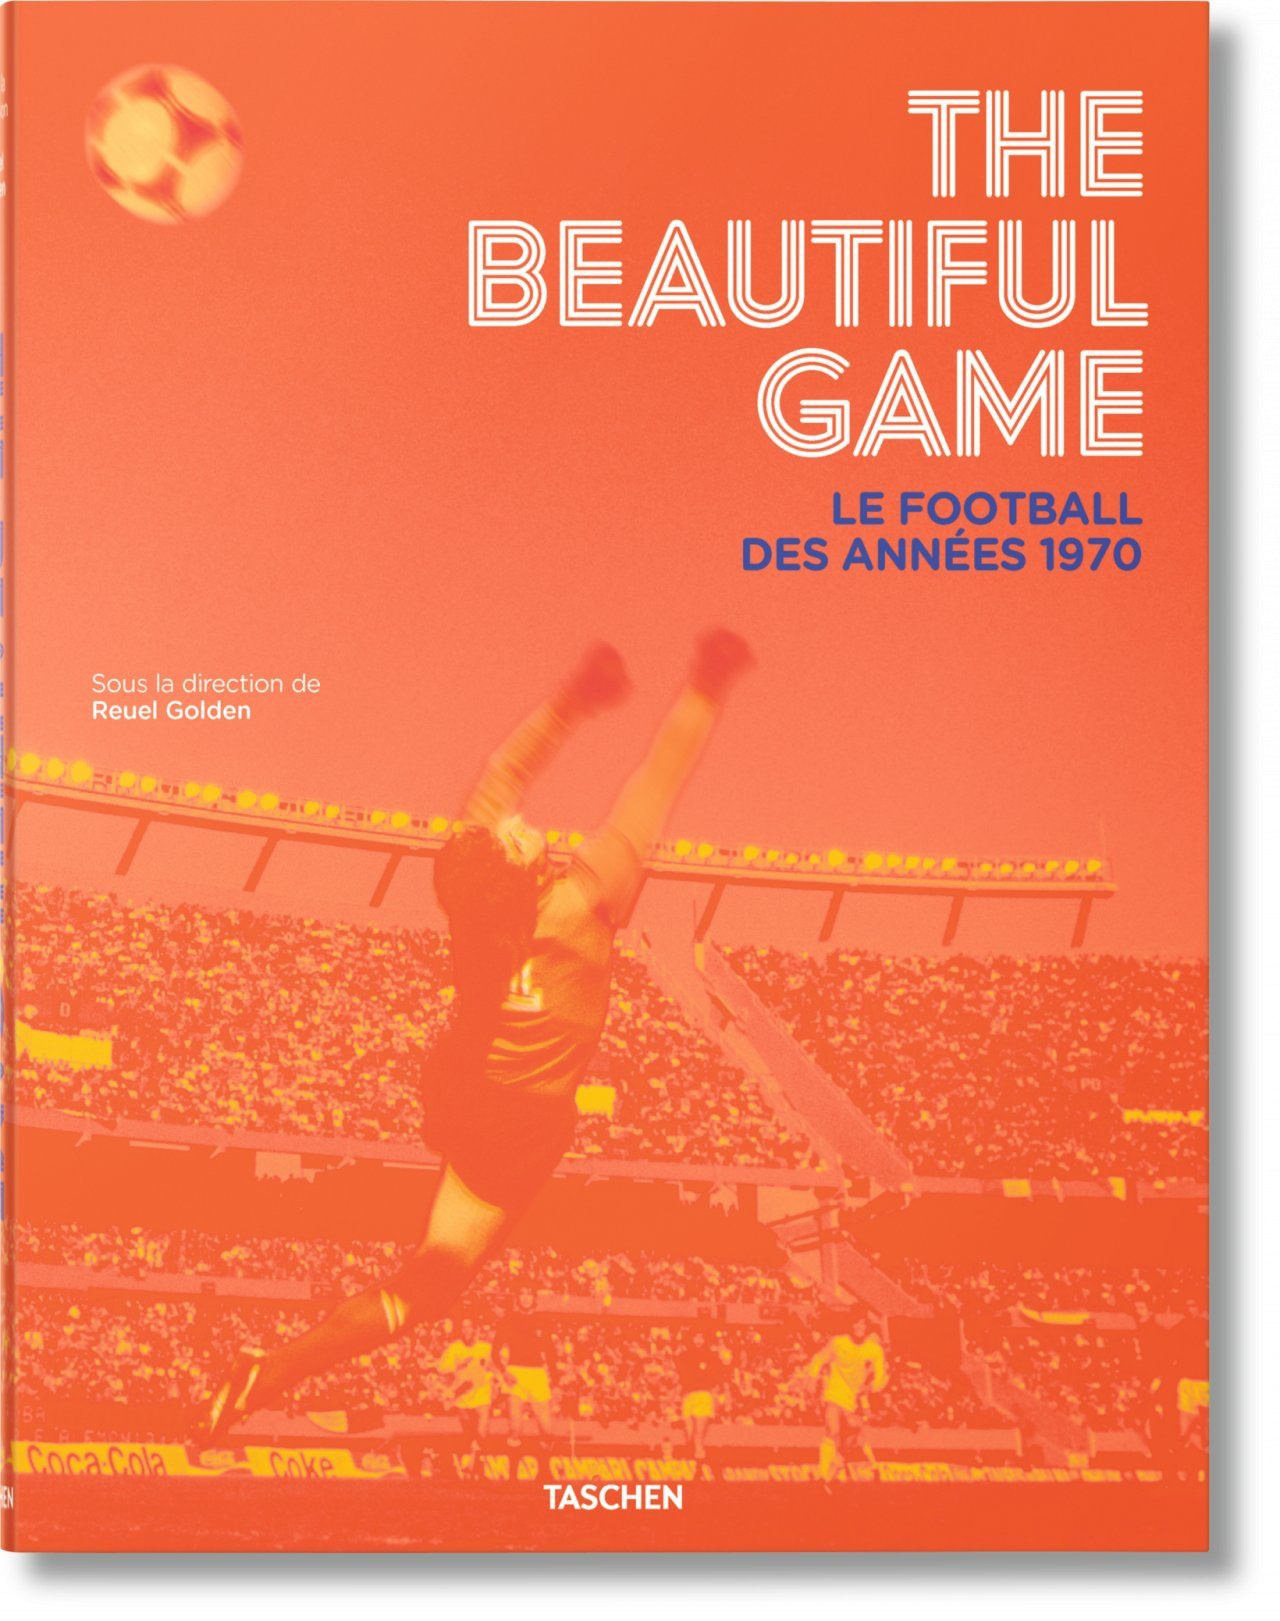 THE BEAUTIFUL GAME. LE FOOTBALL DES ANNEES 1970